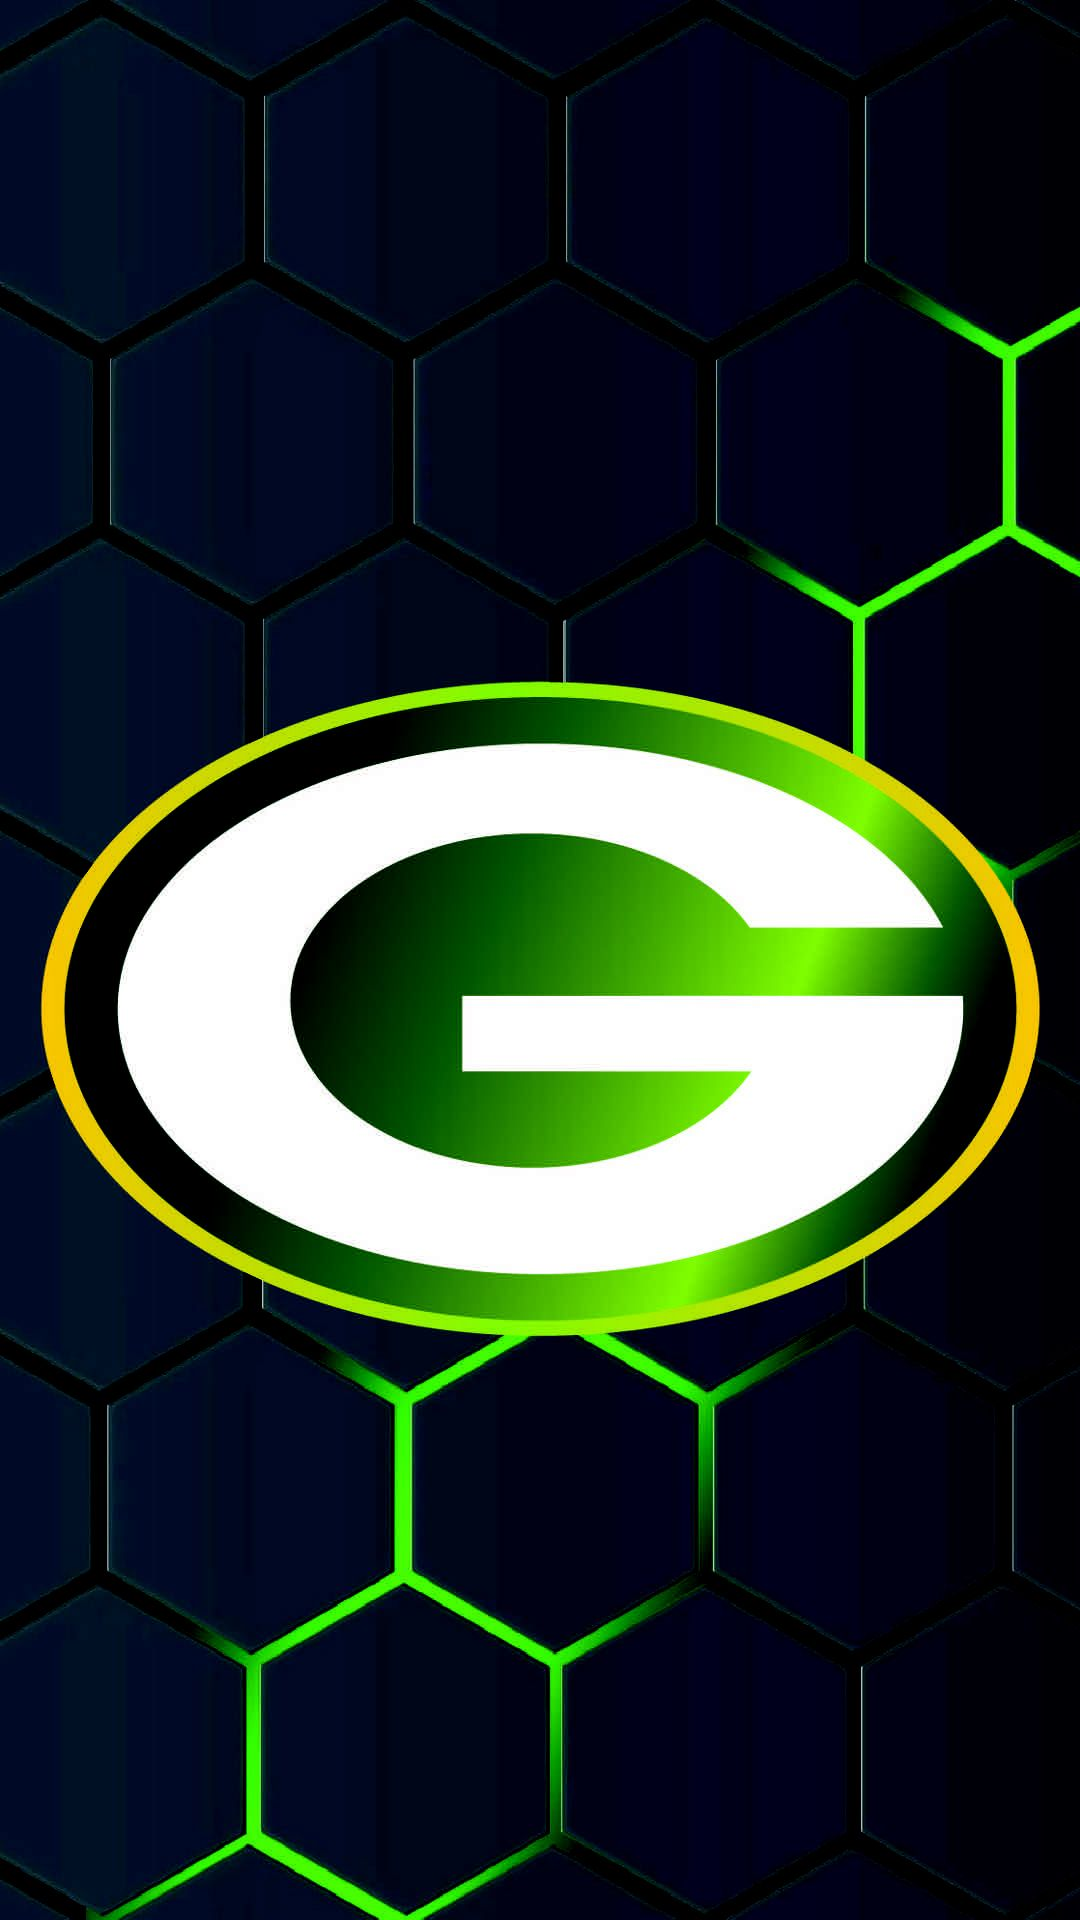 Green Bay Packers Green Bay Packers Clothing Green Bay Packers